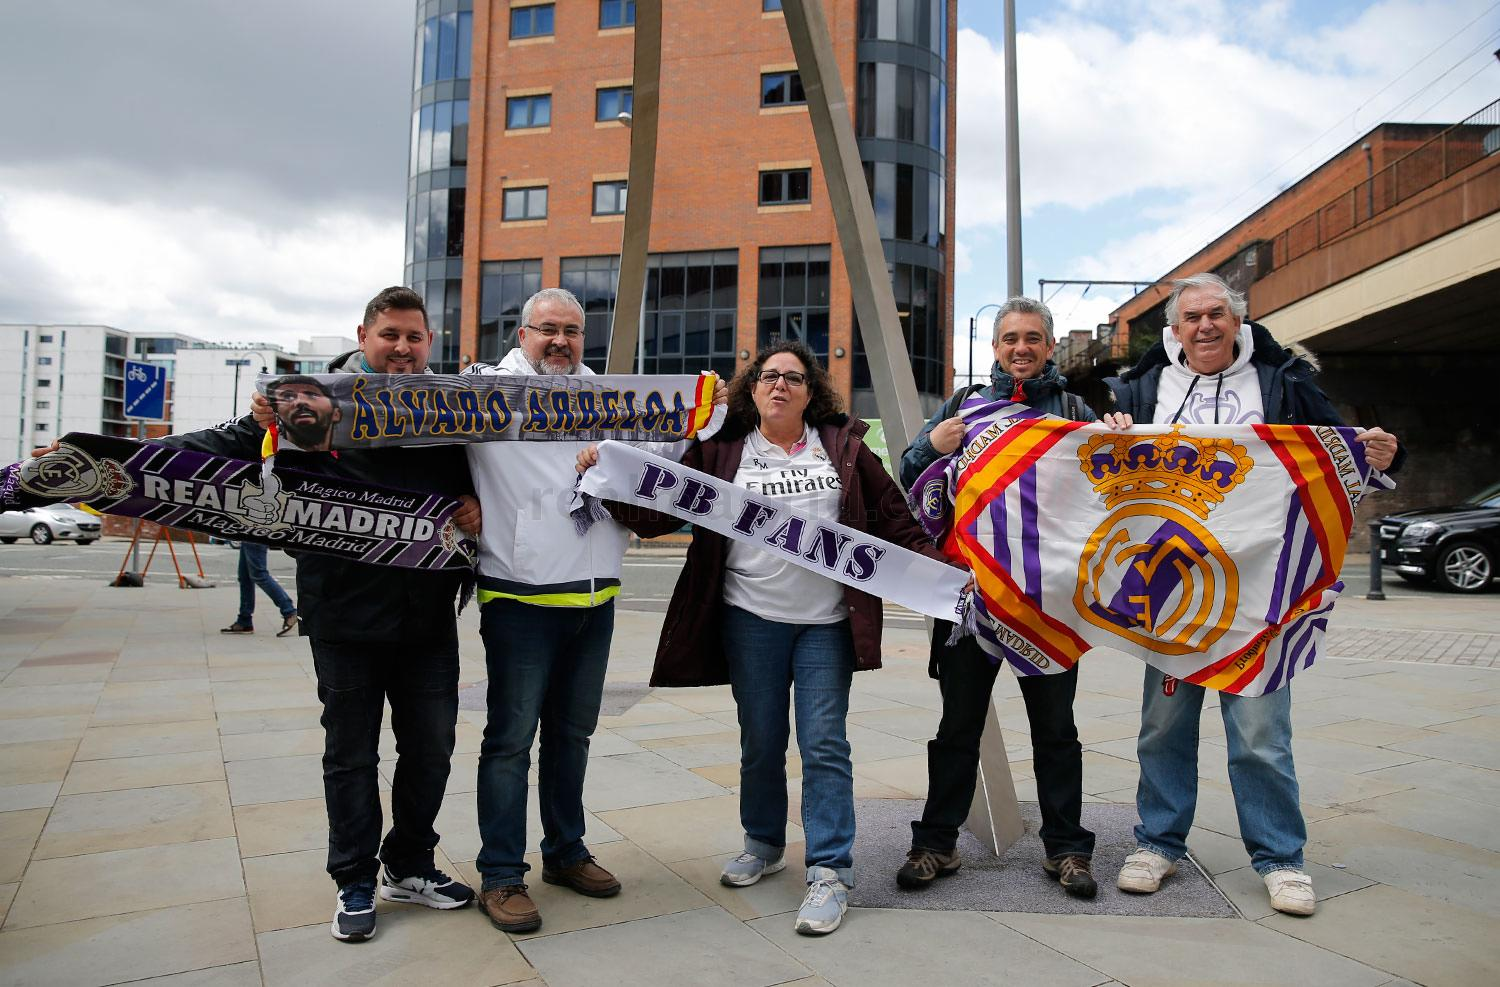 Real Madrid - Aficionados del Real Madrid en Manchester - 26-04-2016